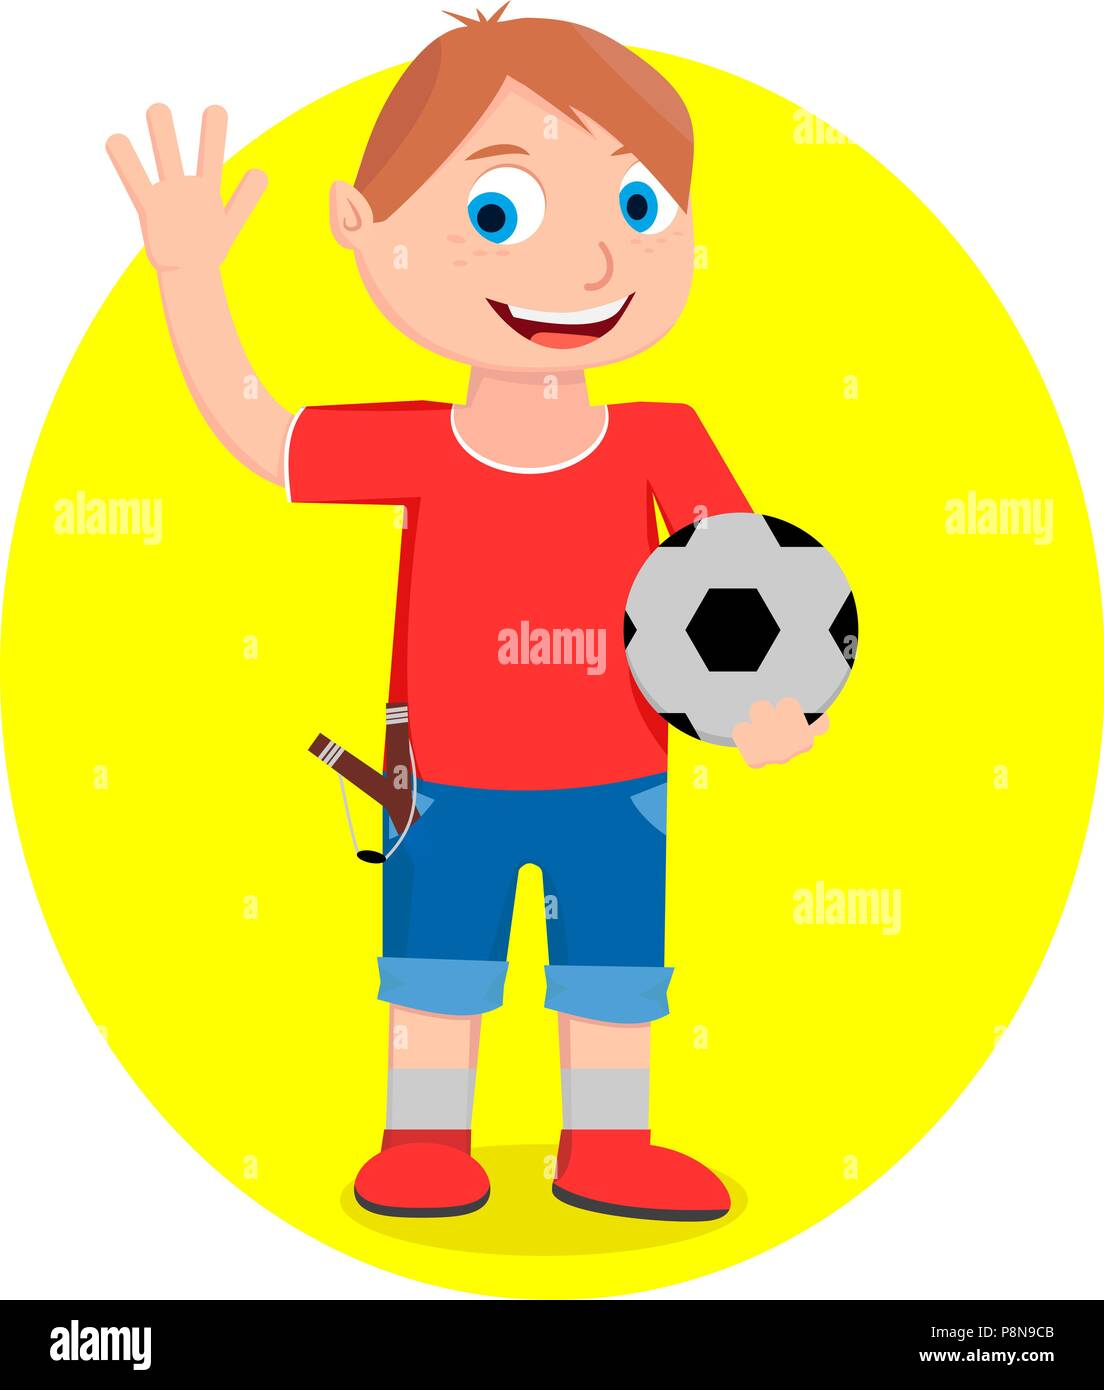 A boy in shorts and a T-shirt is holding a ball in his hand and greeting someone. - Stock Vector